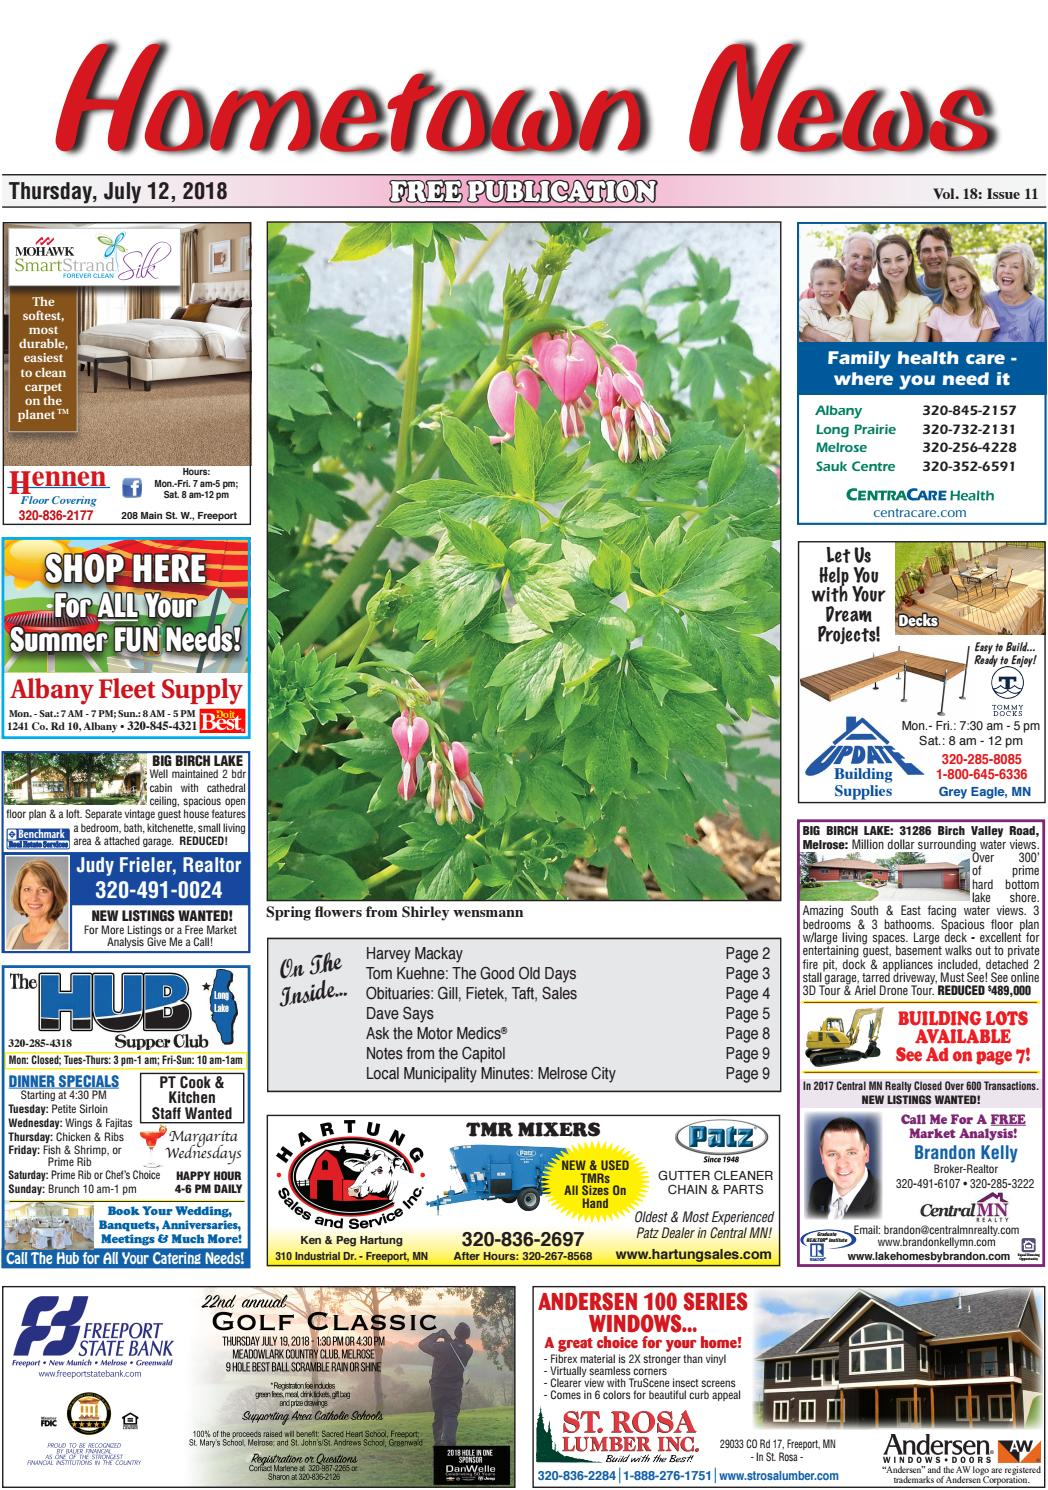 Hometown News July 12, 2018 by Hometown News - issuu on pleasant cove house plan, albritton house plan, walker house plan, richmond house plan, andover house plan, coleraine house plan, grey's anatomy house plan, father bride house plan, minnesota house plan, waverly house plan, goetsch-winckler house plan, farmington house plan, the ripley house plan, bedford house plan, forest lake house plan, houston house plan, the randolph house plan, austin house plan, the perfect house plan, morris house plan,